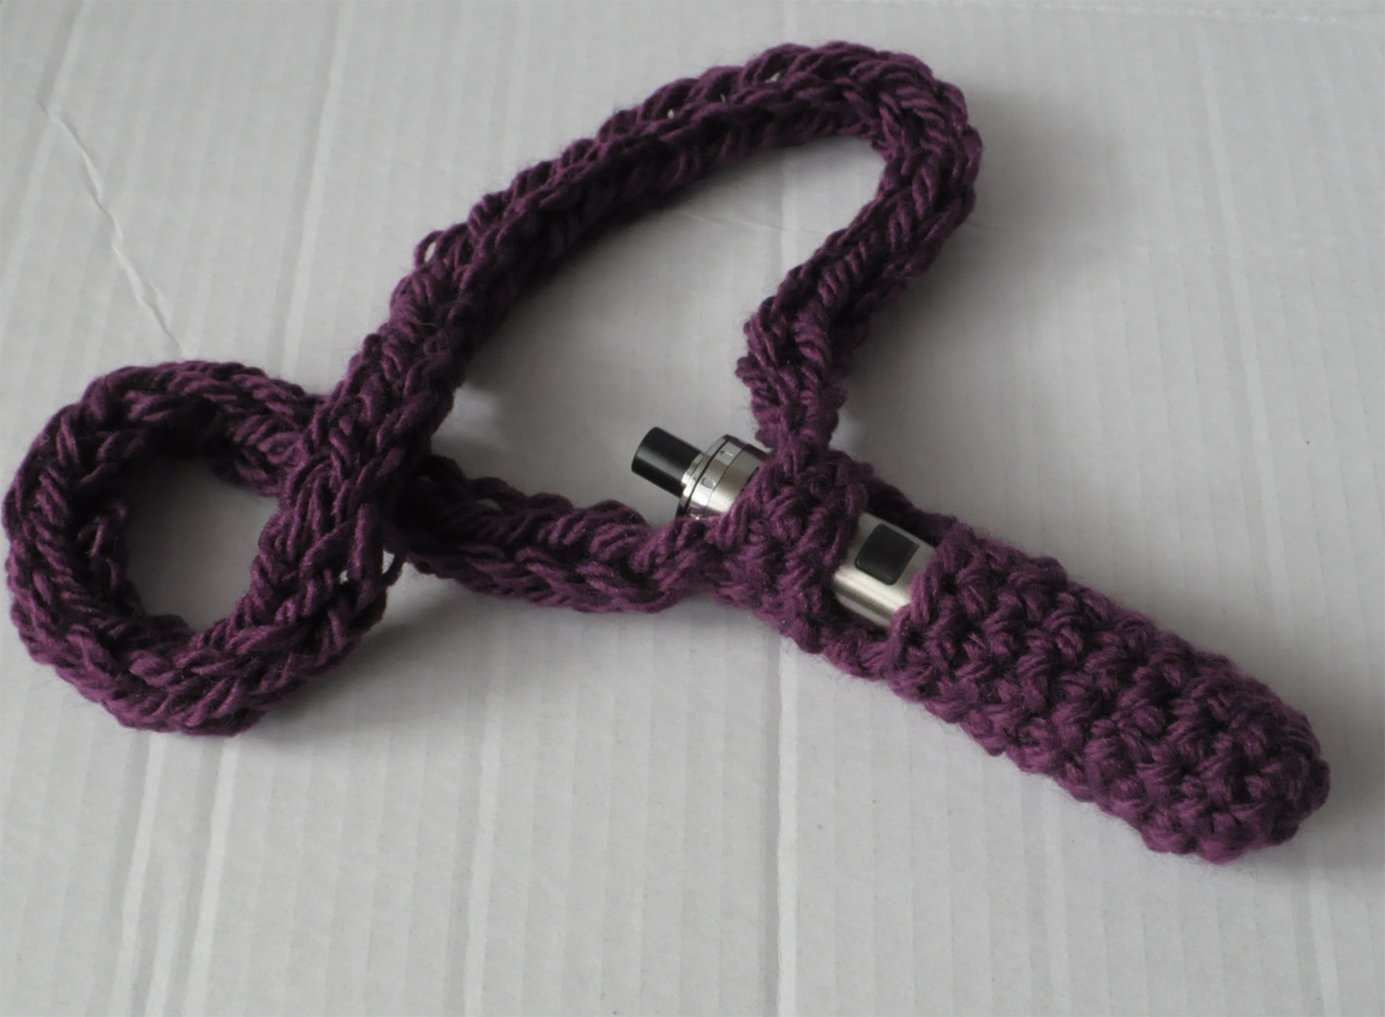 Handmade Chunky e-cig Holder Lanyard Stretchy Pouch Vaping Accessory - Damson